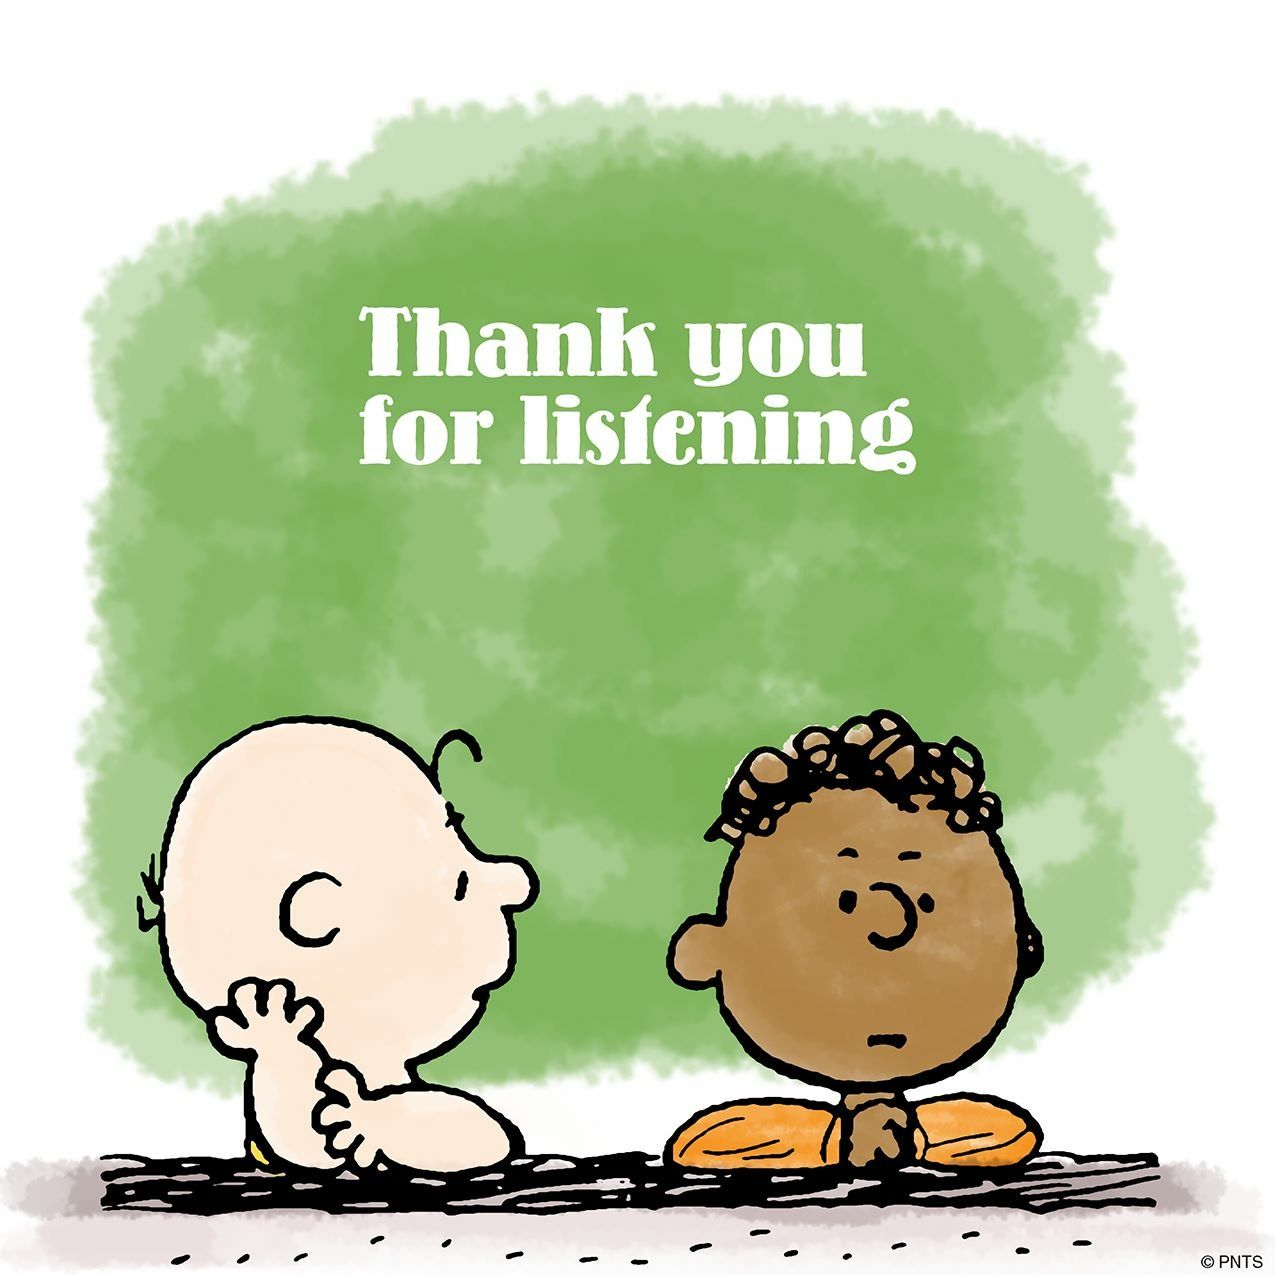 Thank you for listening.   Snoopy, Snoopy quotes, Charlie brown and snoopy